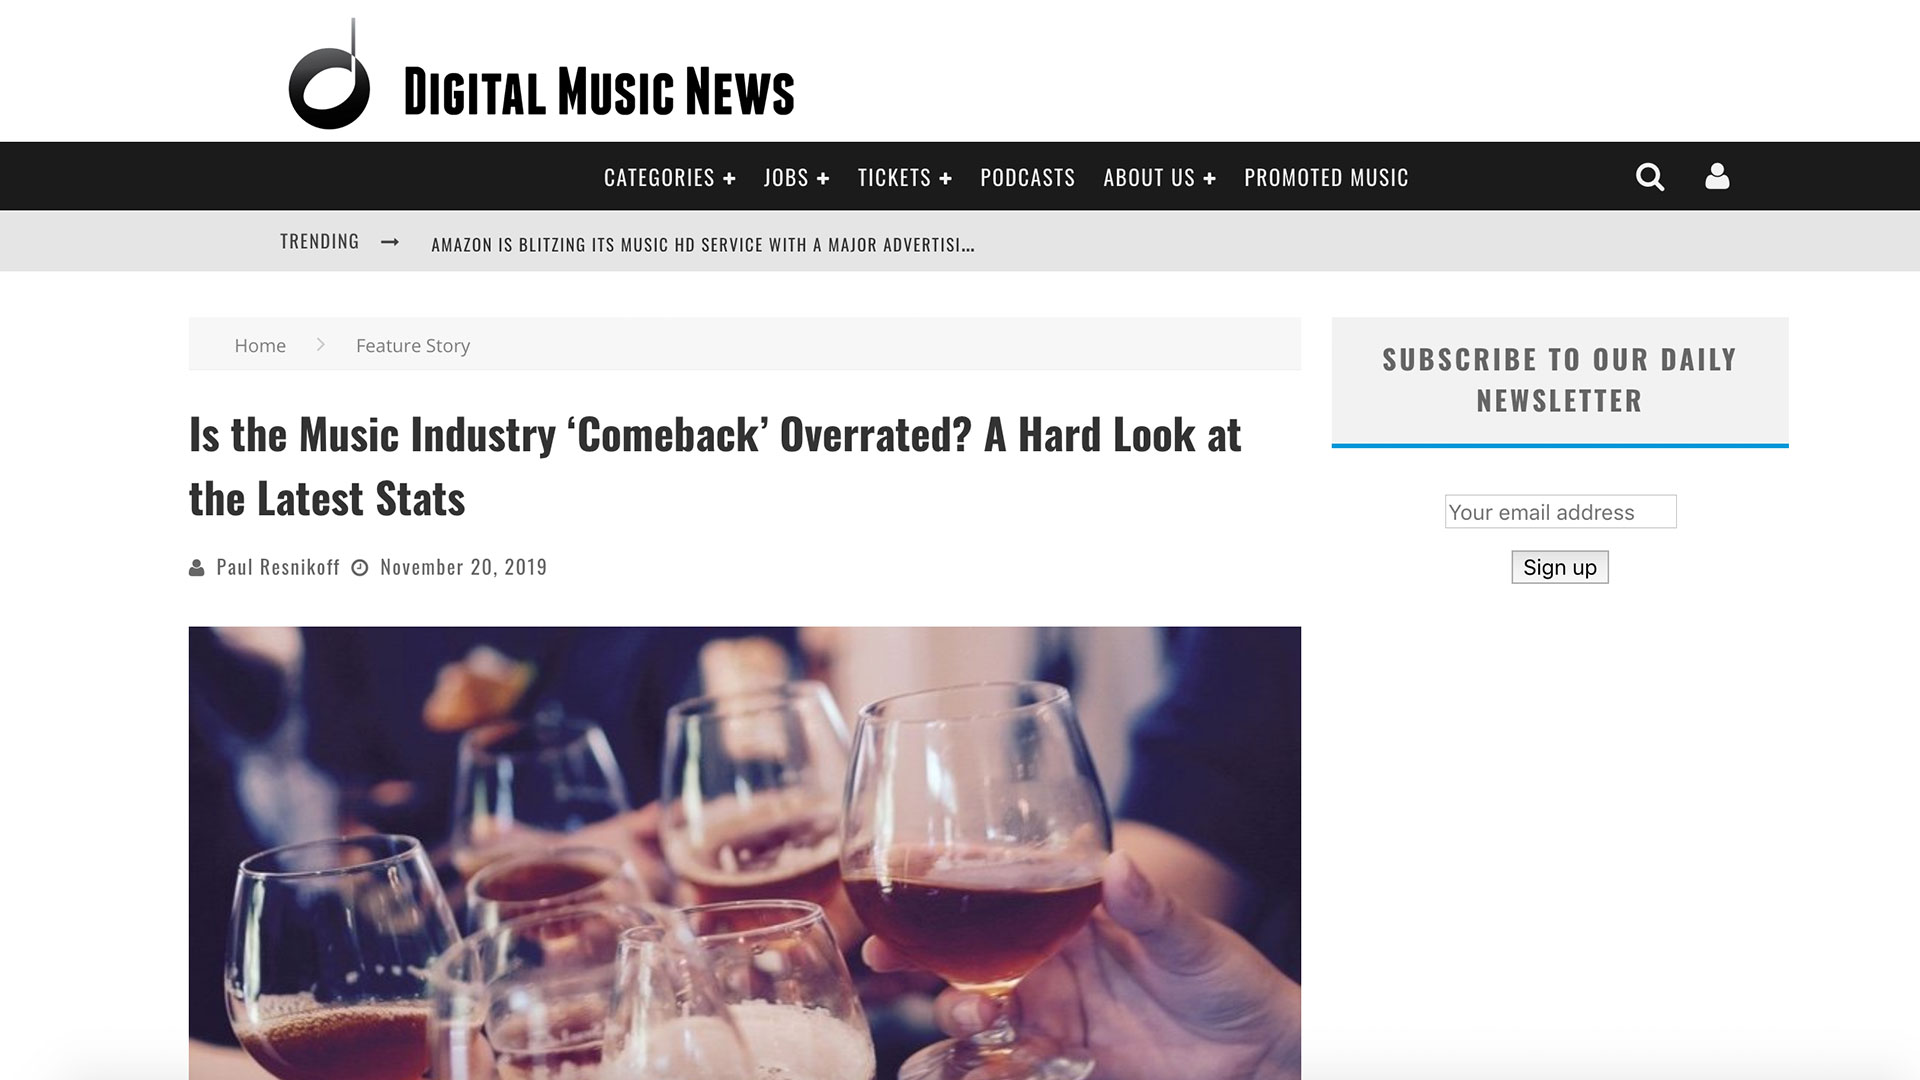 Fairness Rocks News Is the Music Industry 'Comeback' Overrated? A Hard Look at the Latest Stats